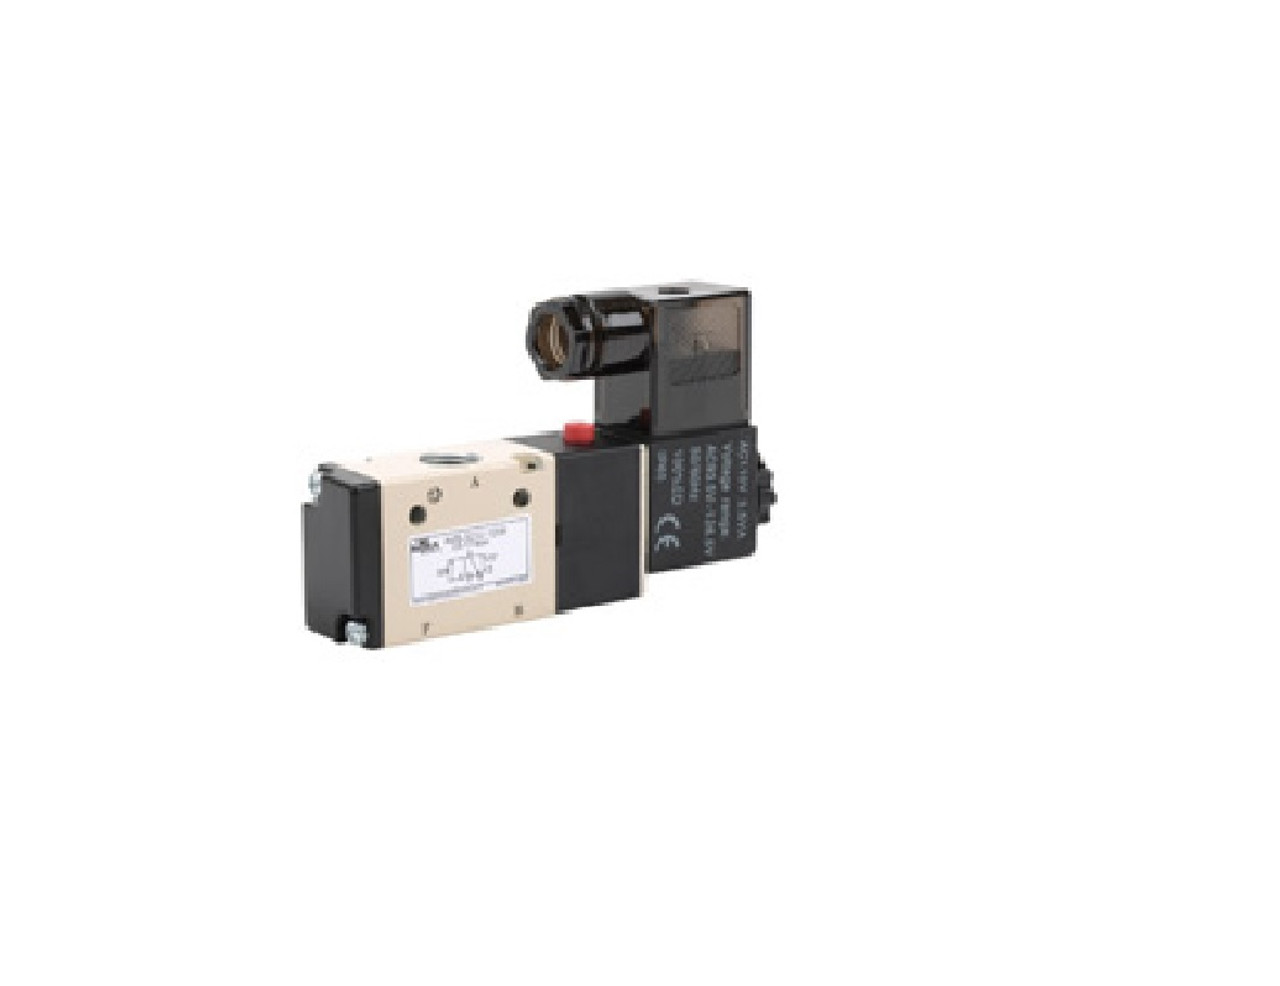 Solenoid Valve, 3-port (3-way), 2-position, N.C.